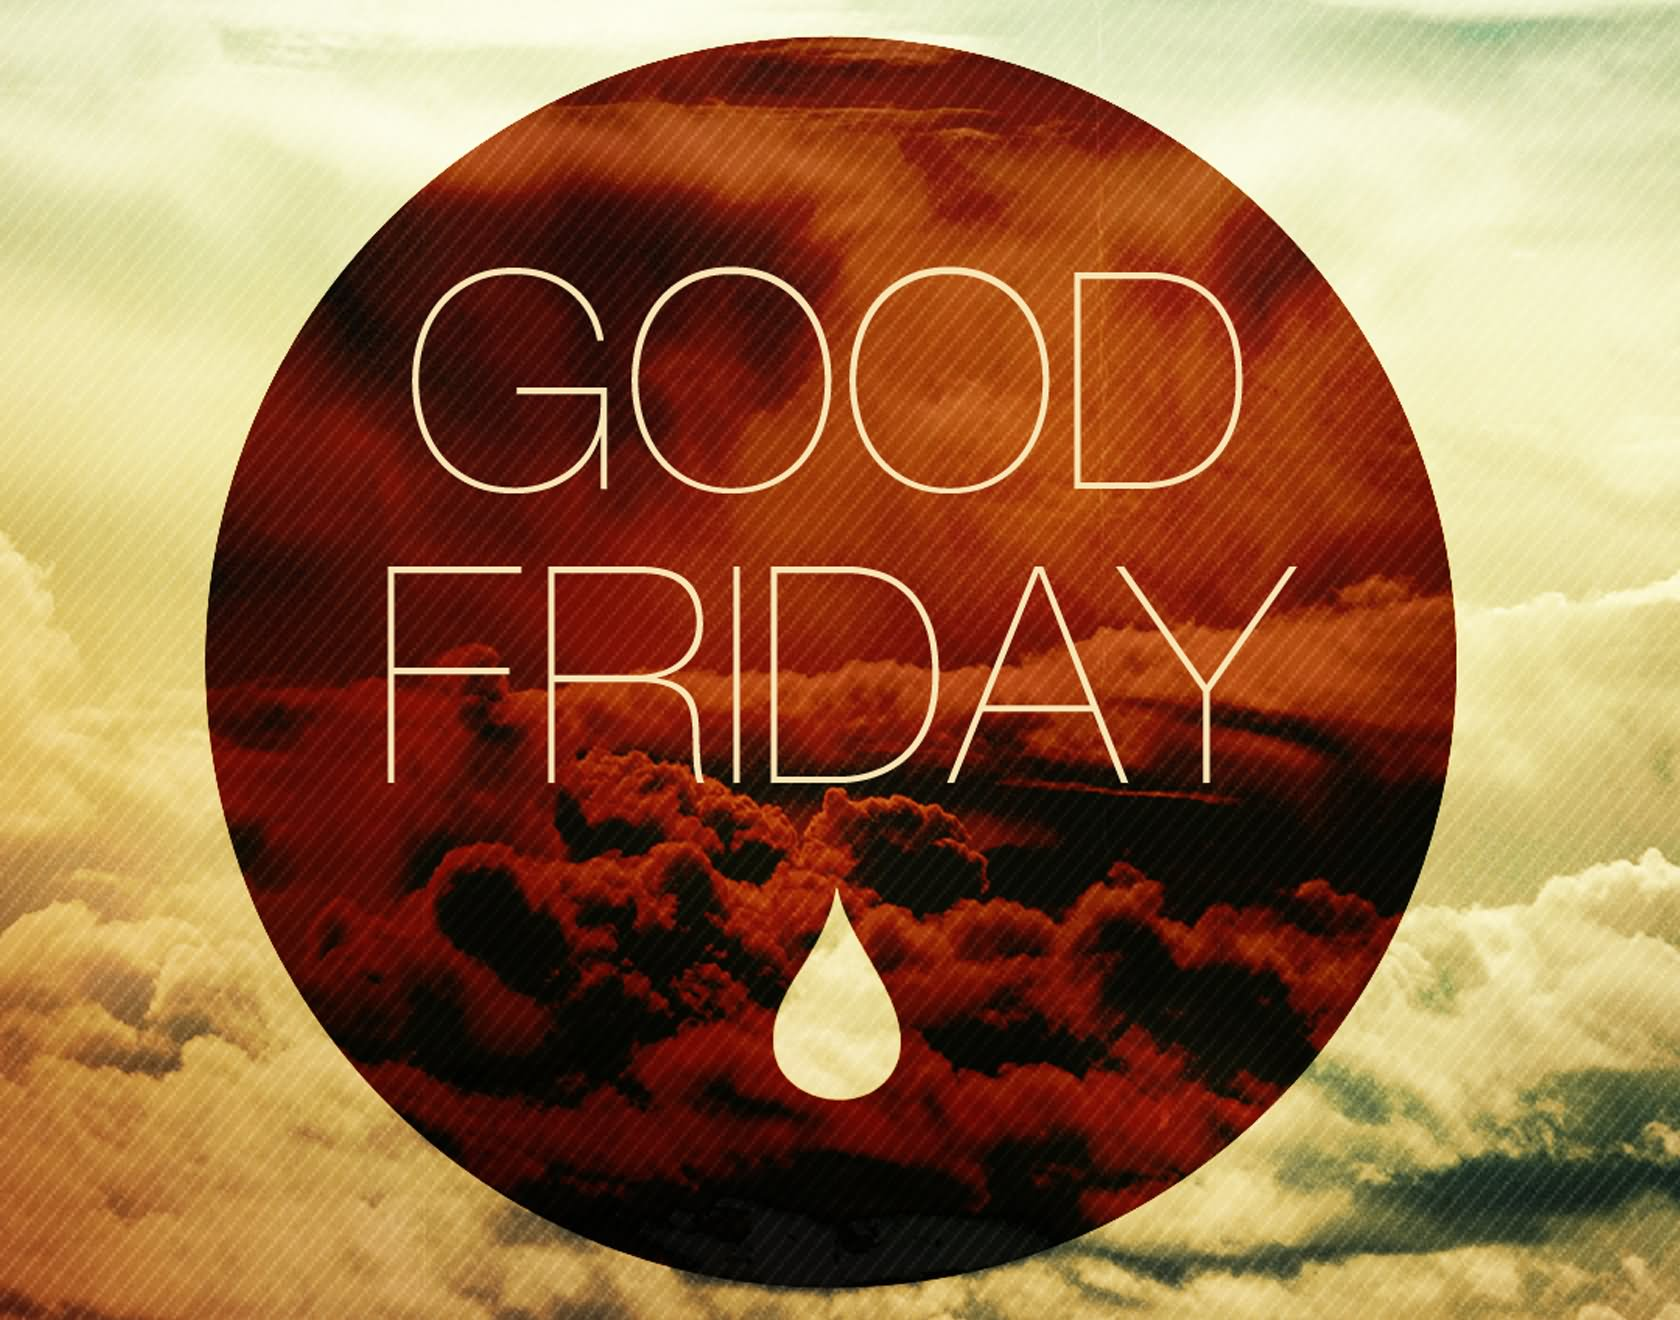 Good Friday Greetings Image